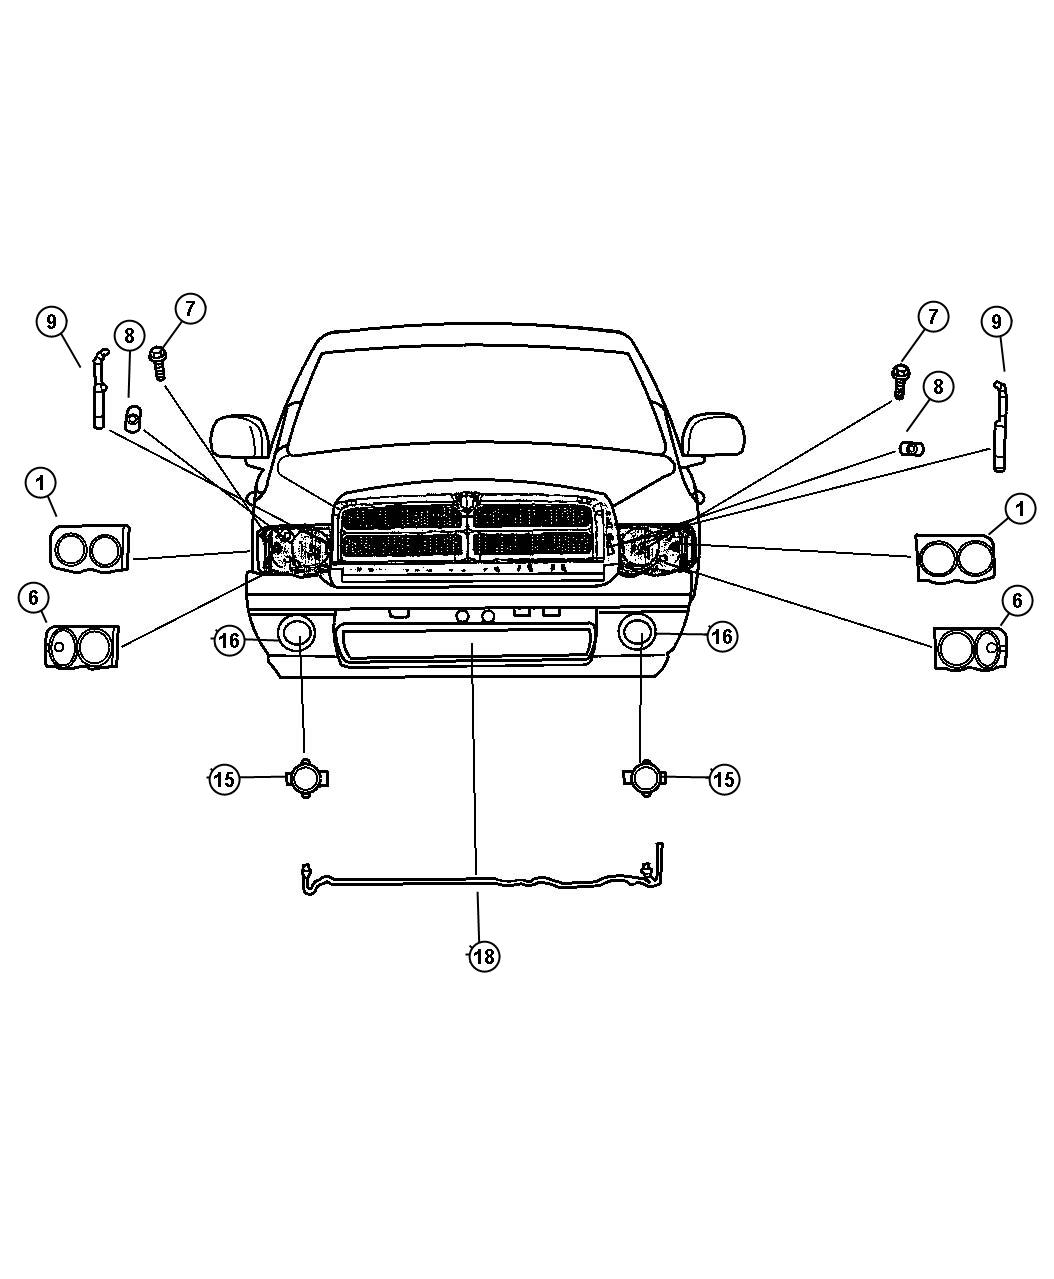 Dodge Ram Socket Used For Park And Turn Signal